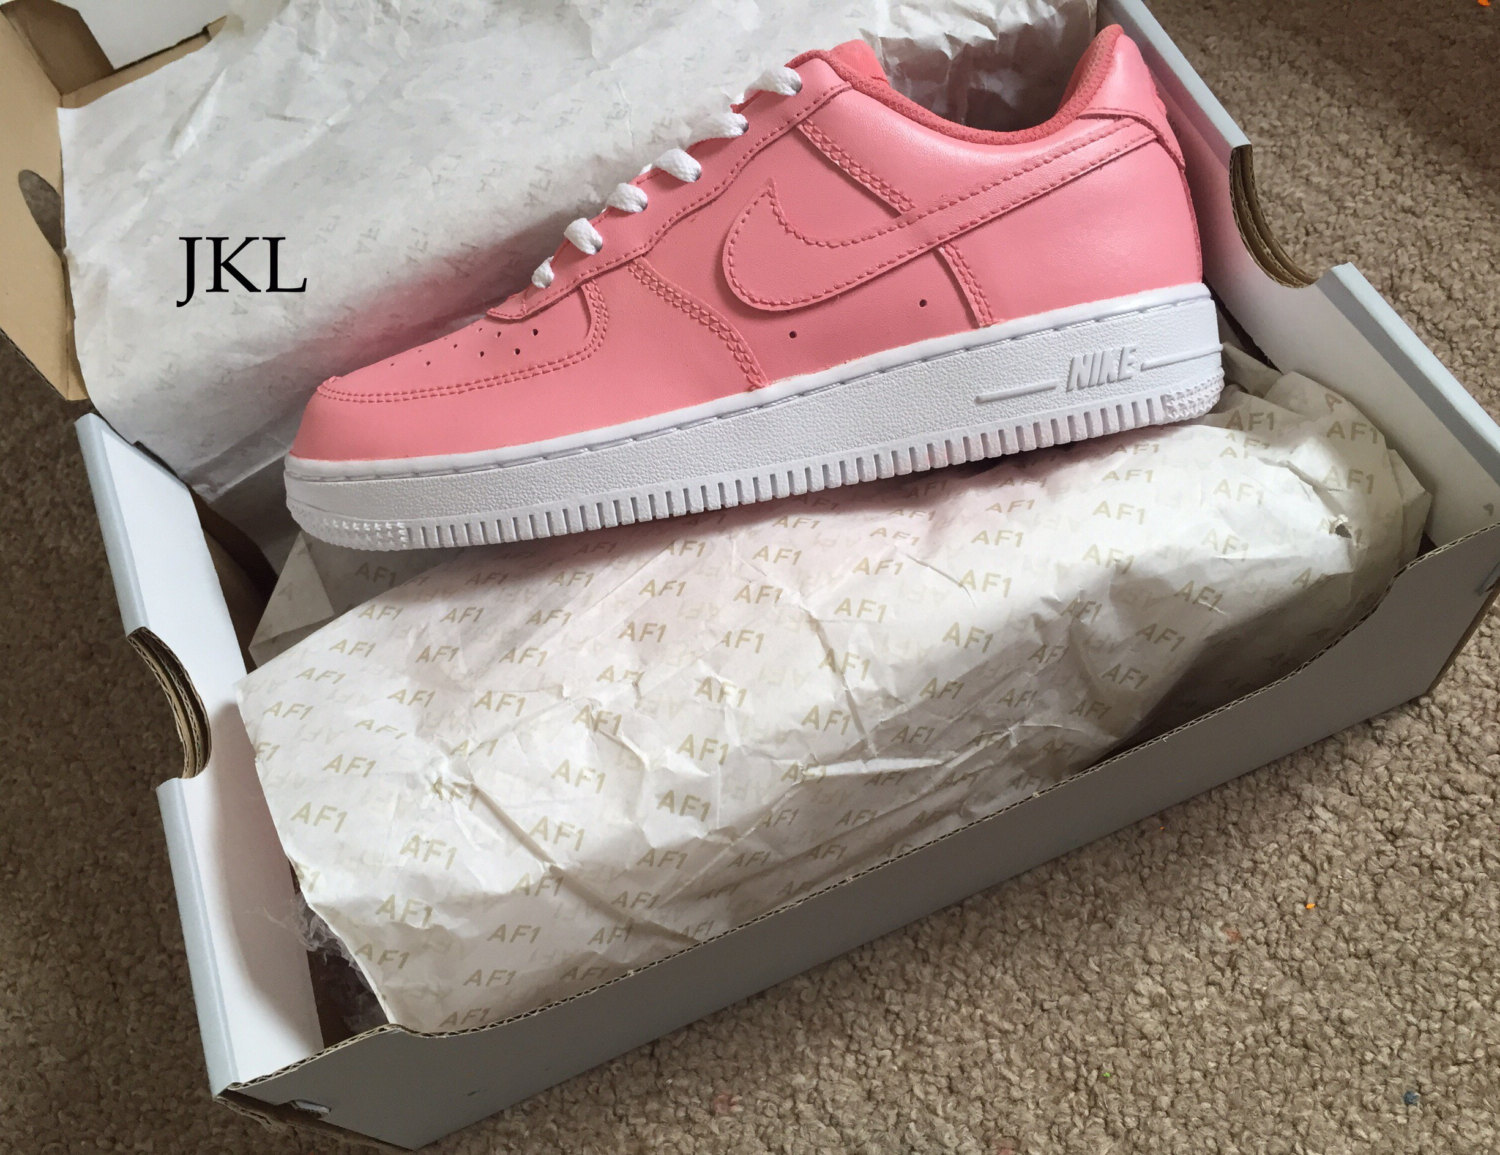 PINK PETALS Nike Air Force one, Nike Air Force 1 Pink, Petal Pink Nike,  Unisex Nike Air ...